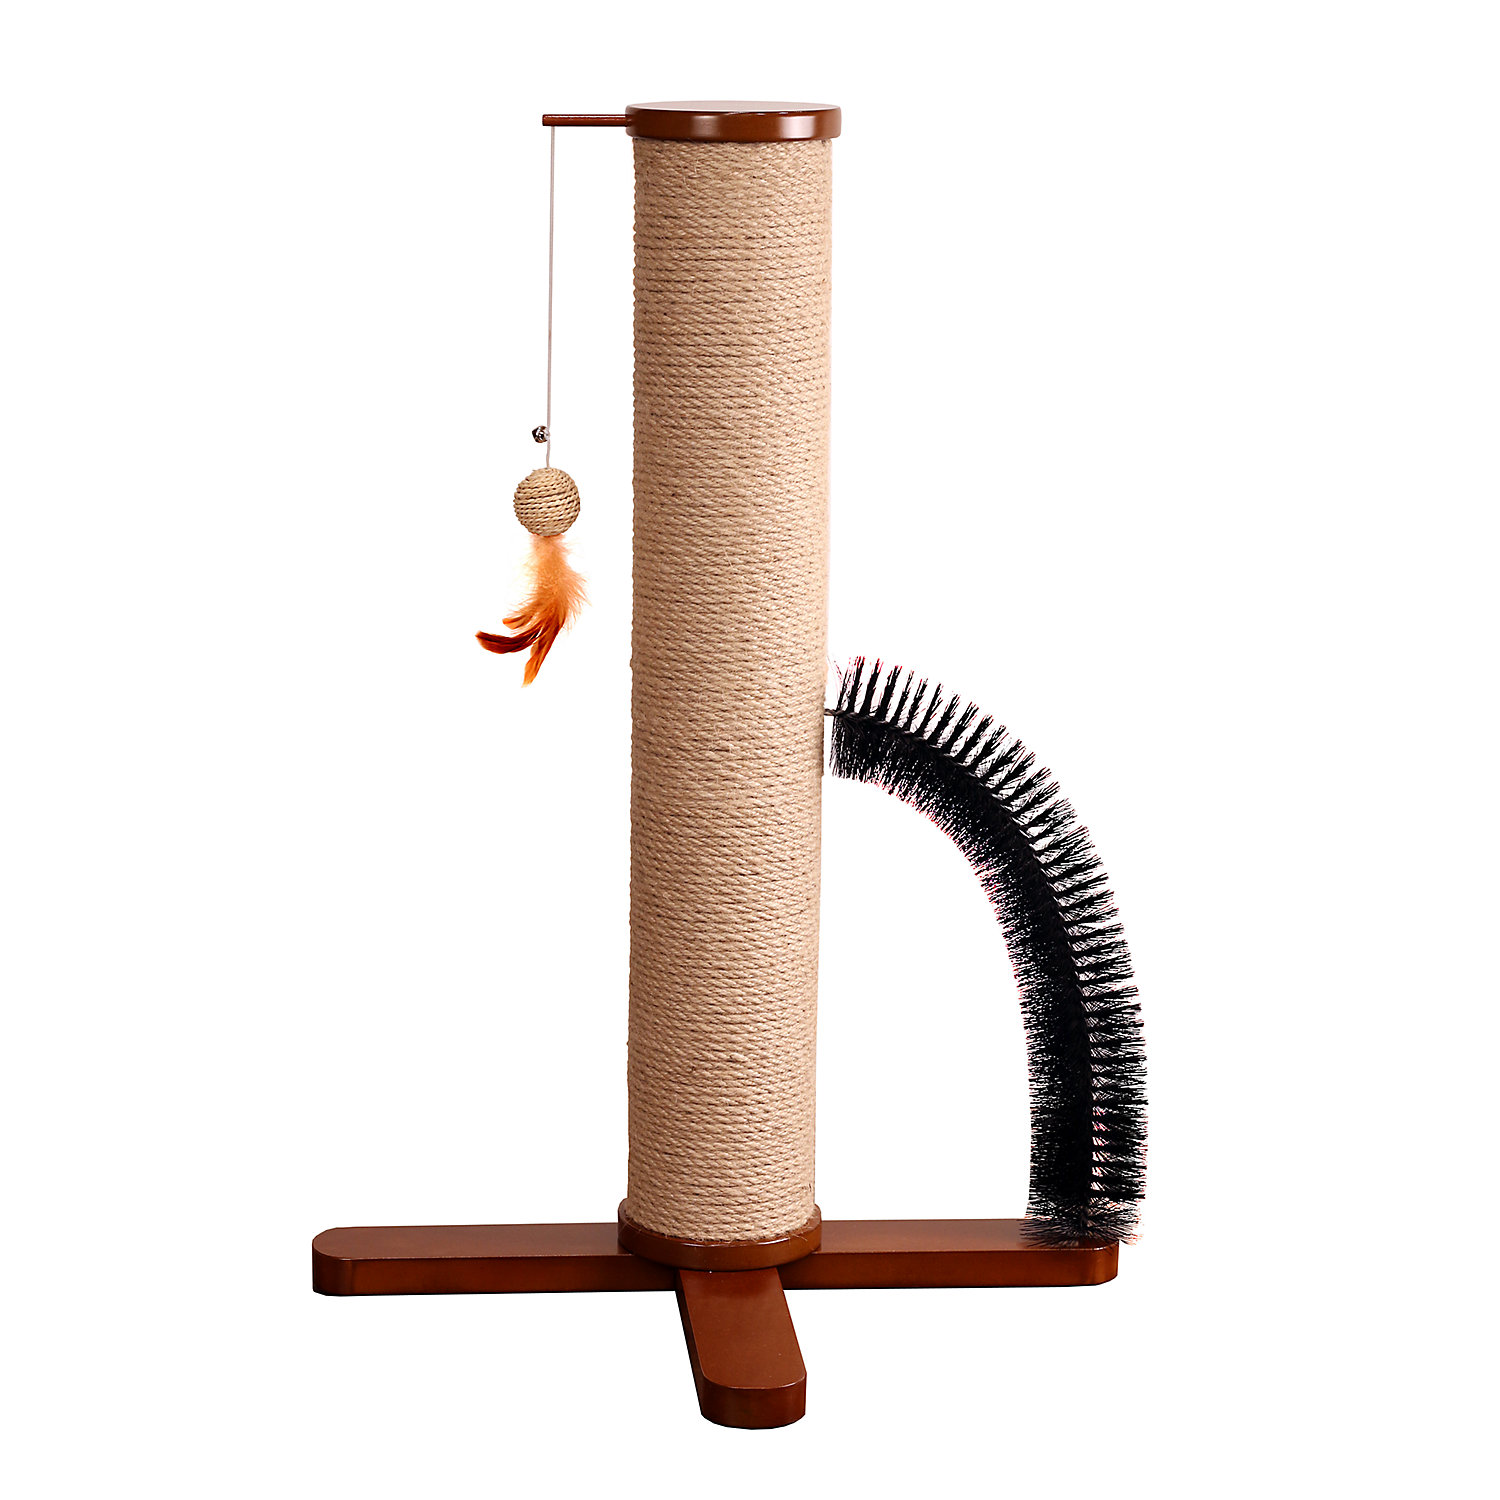 Merry Products Purfect 3in1 Scratcher Post